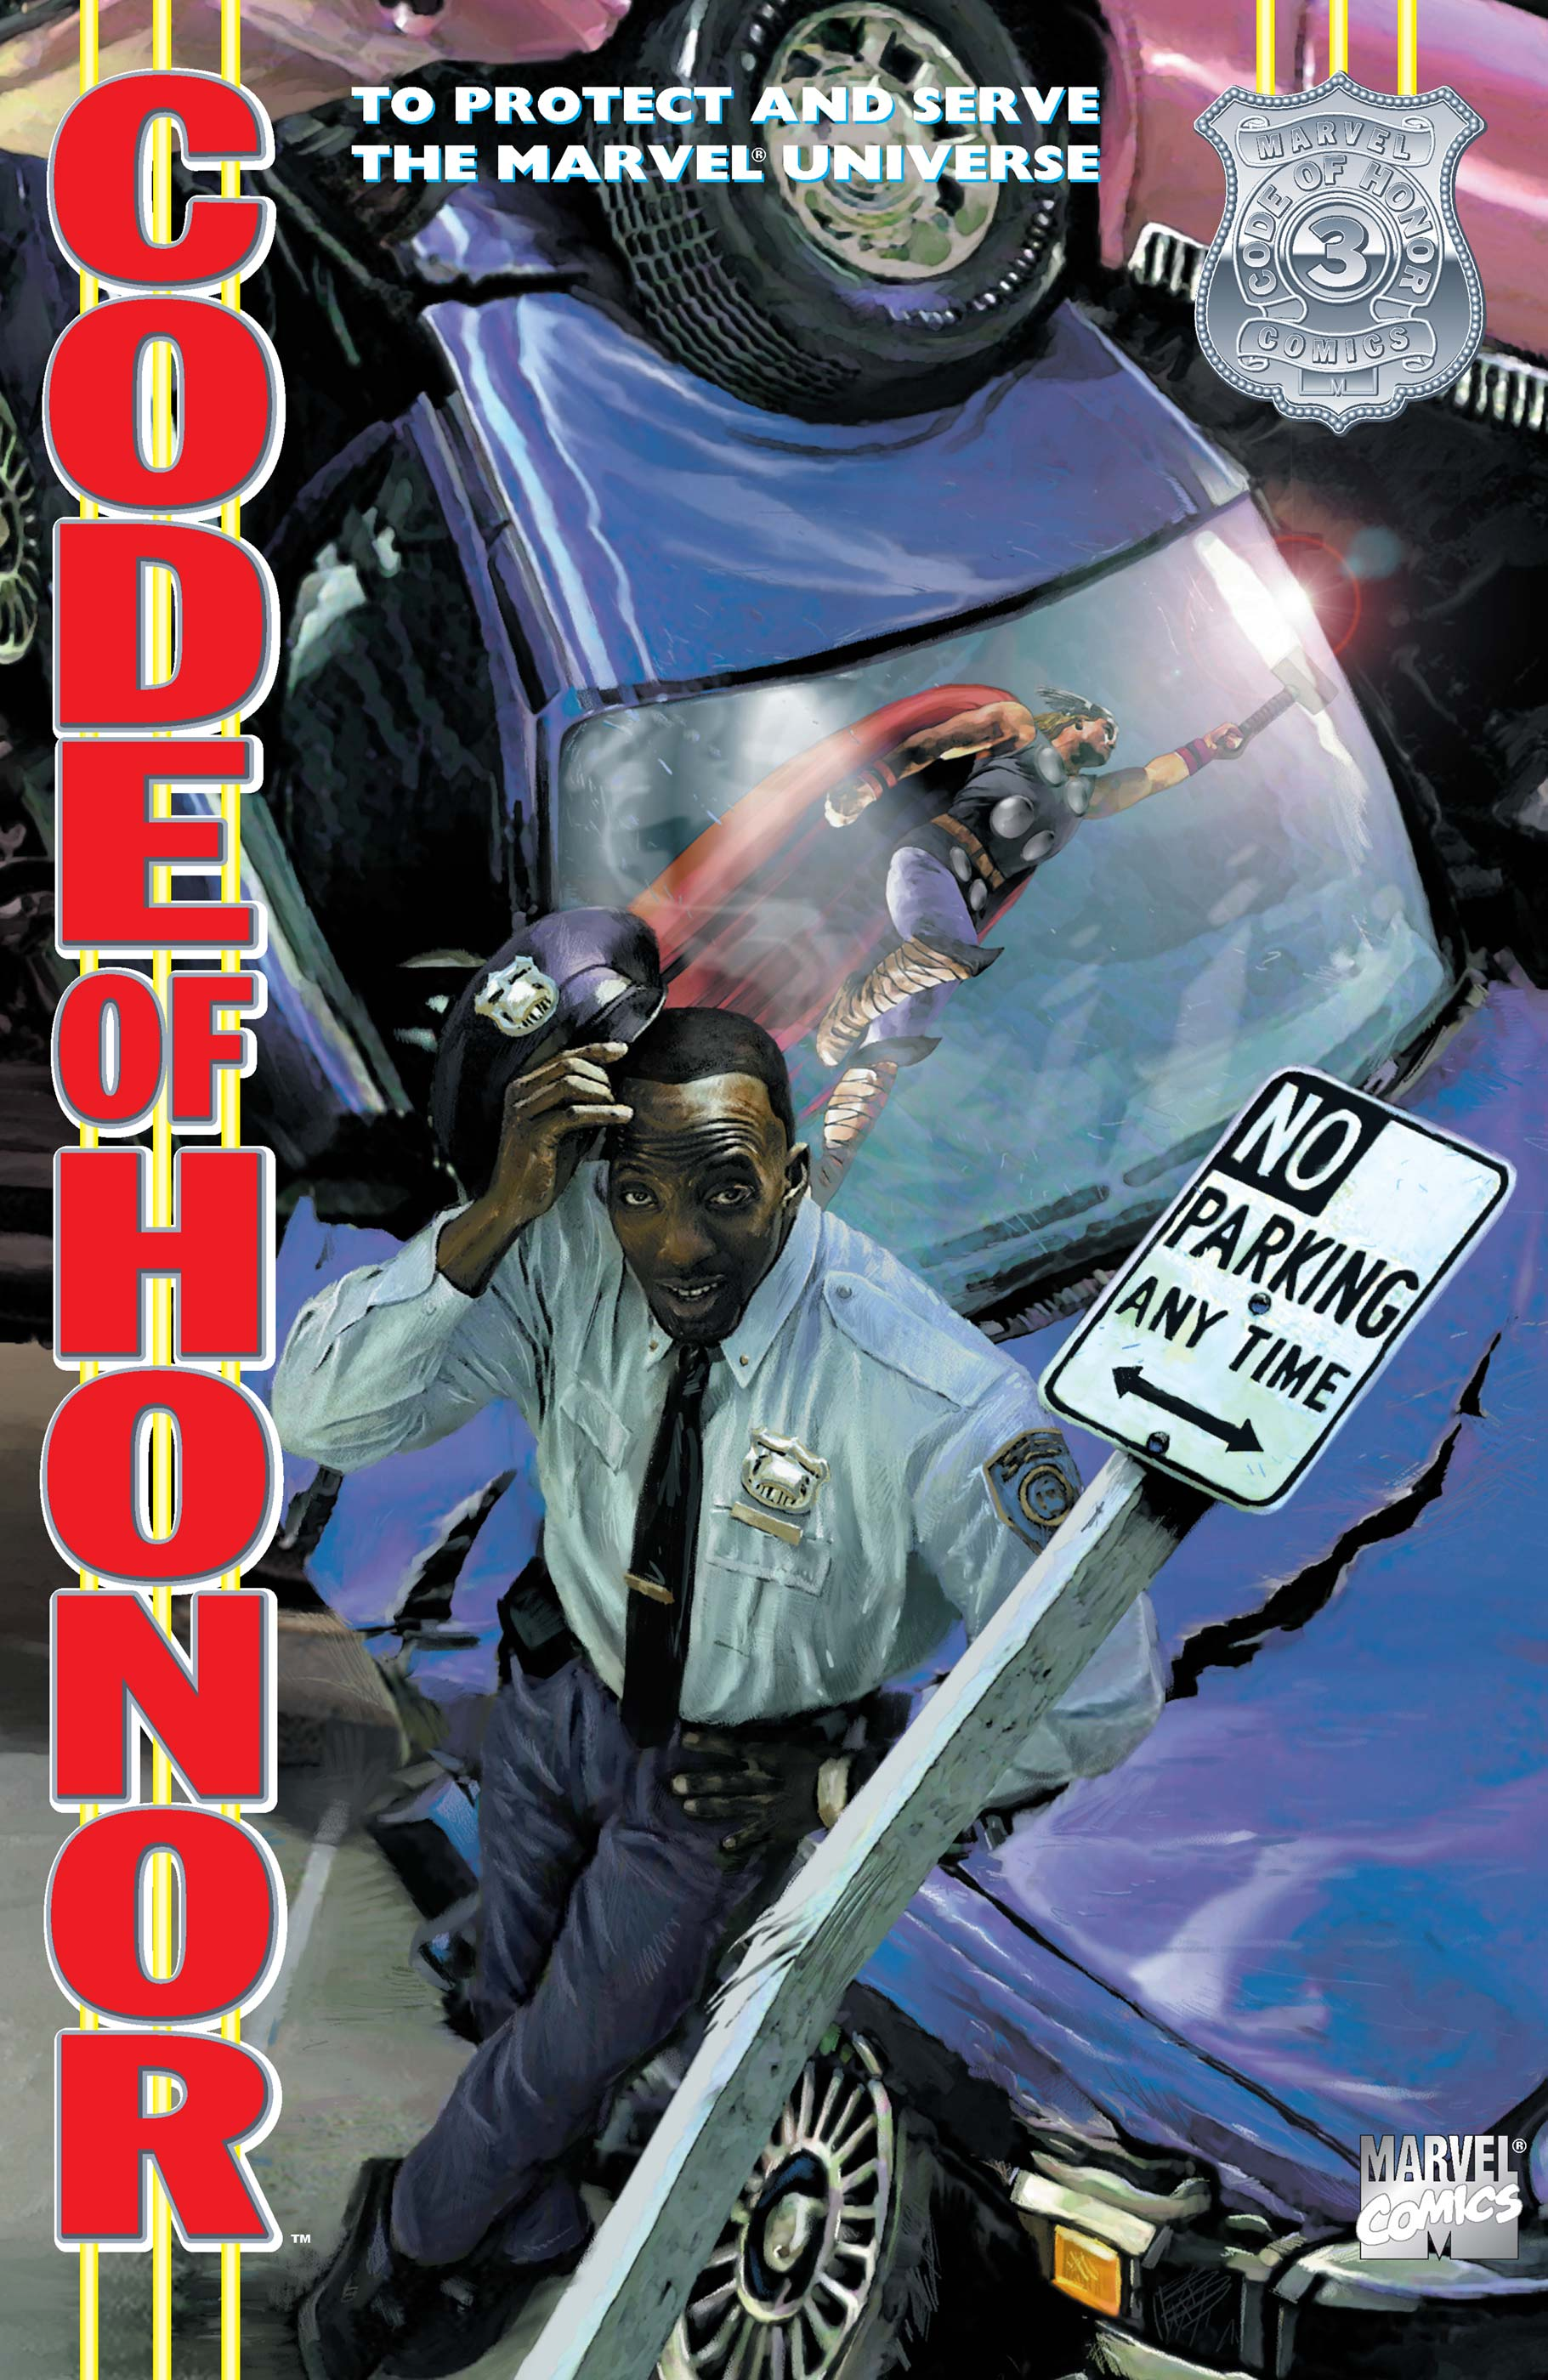 Code of Honor (1997) #3